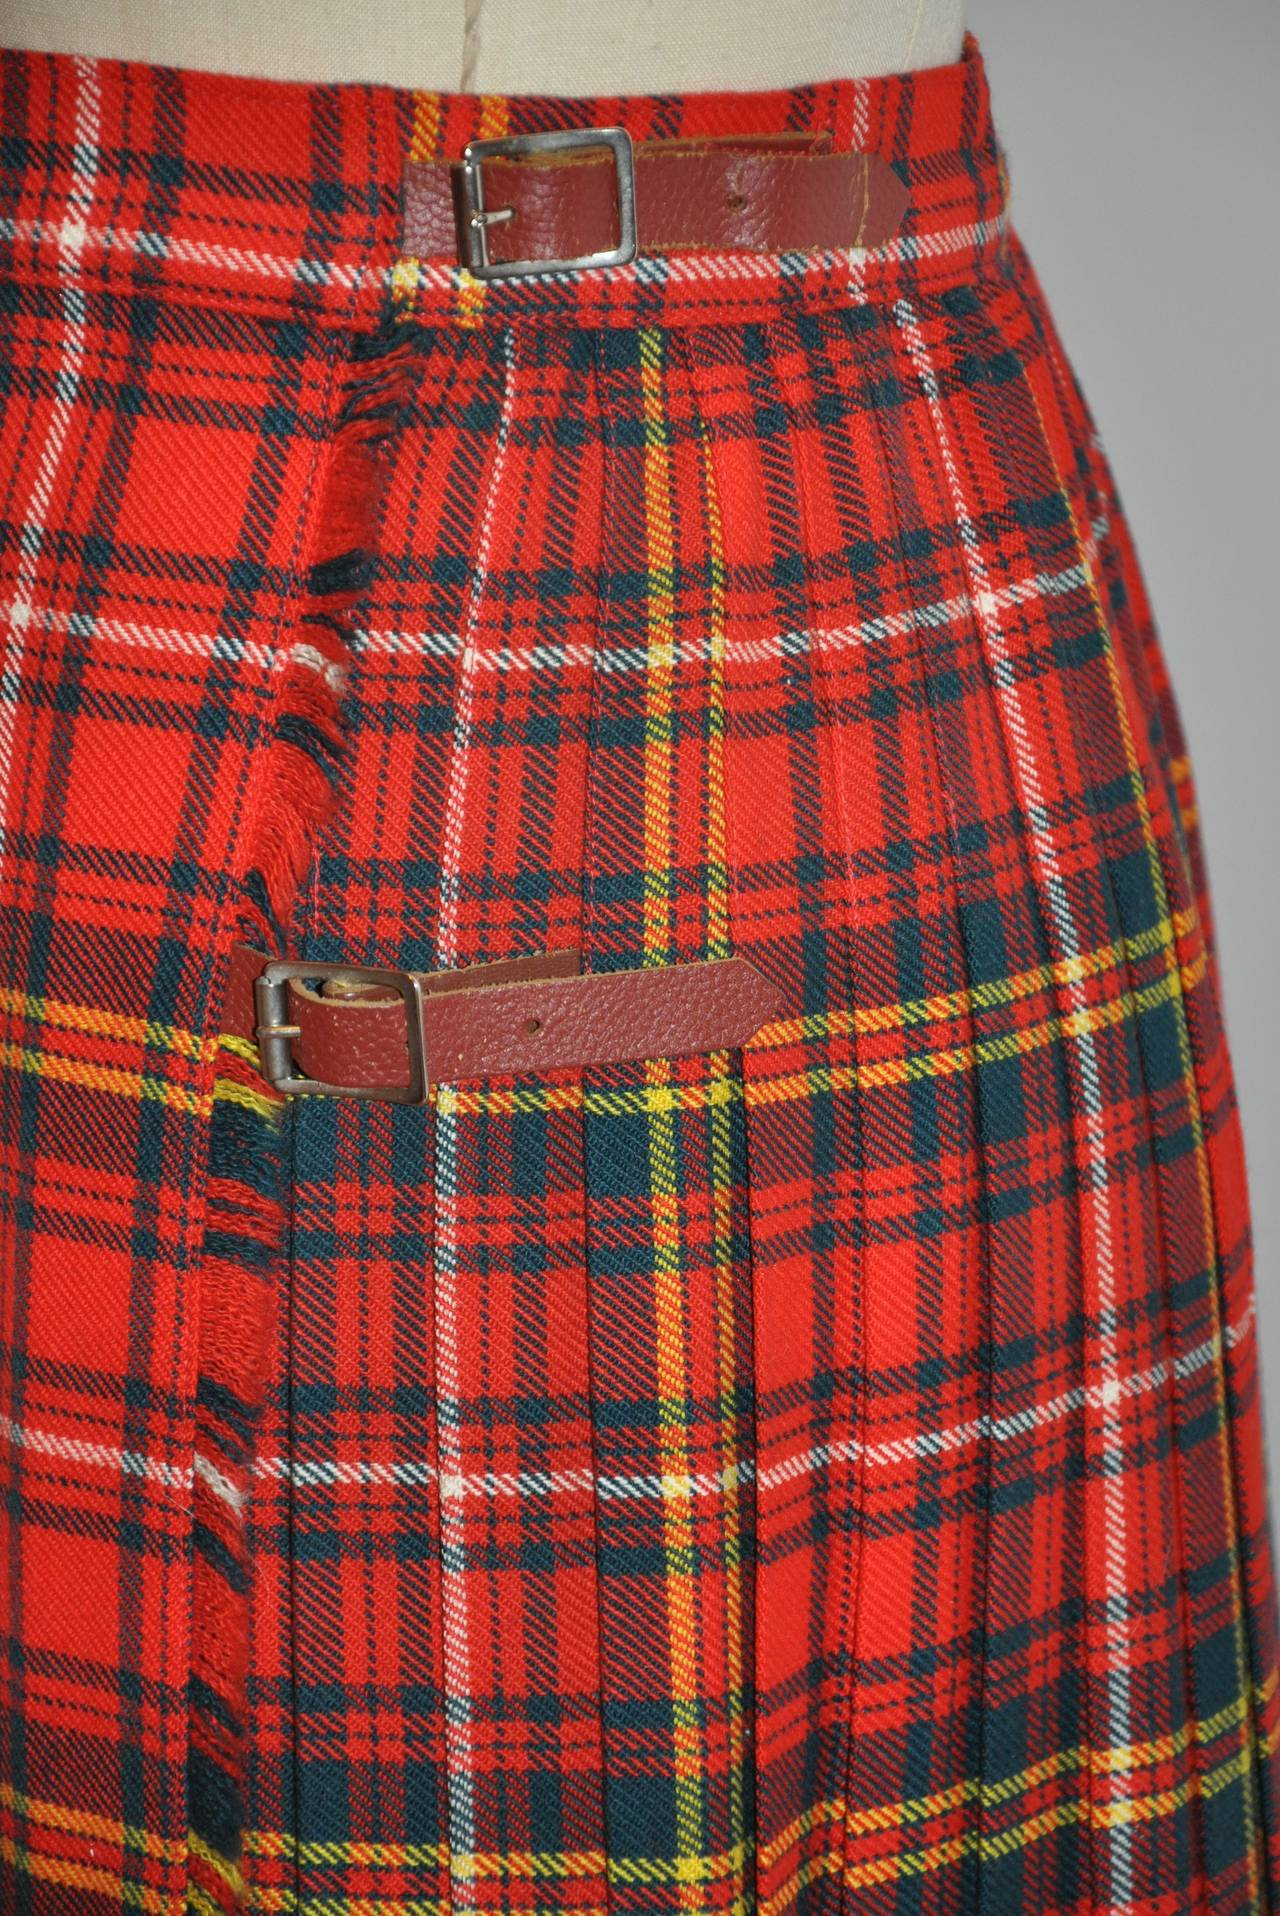 L.S. Ayres & Co Bold Red Plaid Maxi Wrap Skirt 6